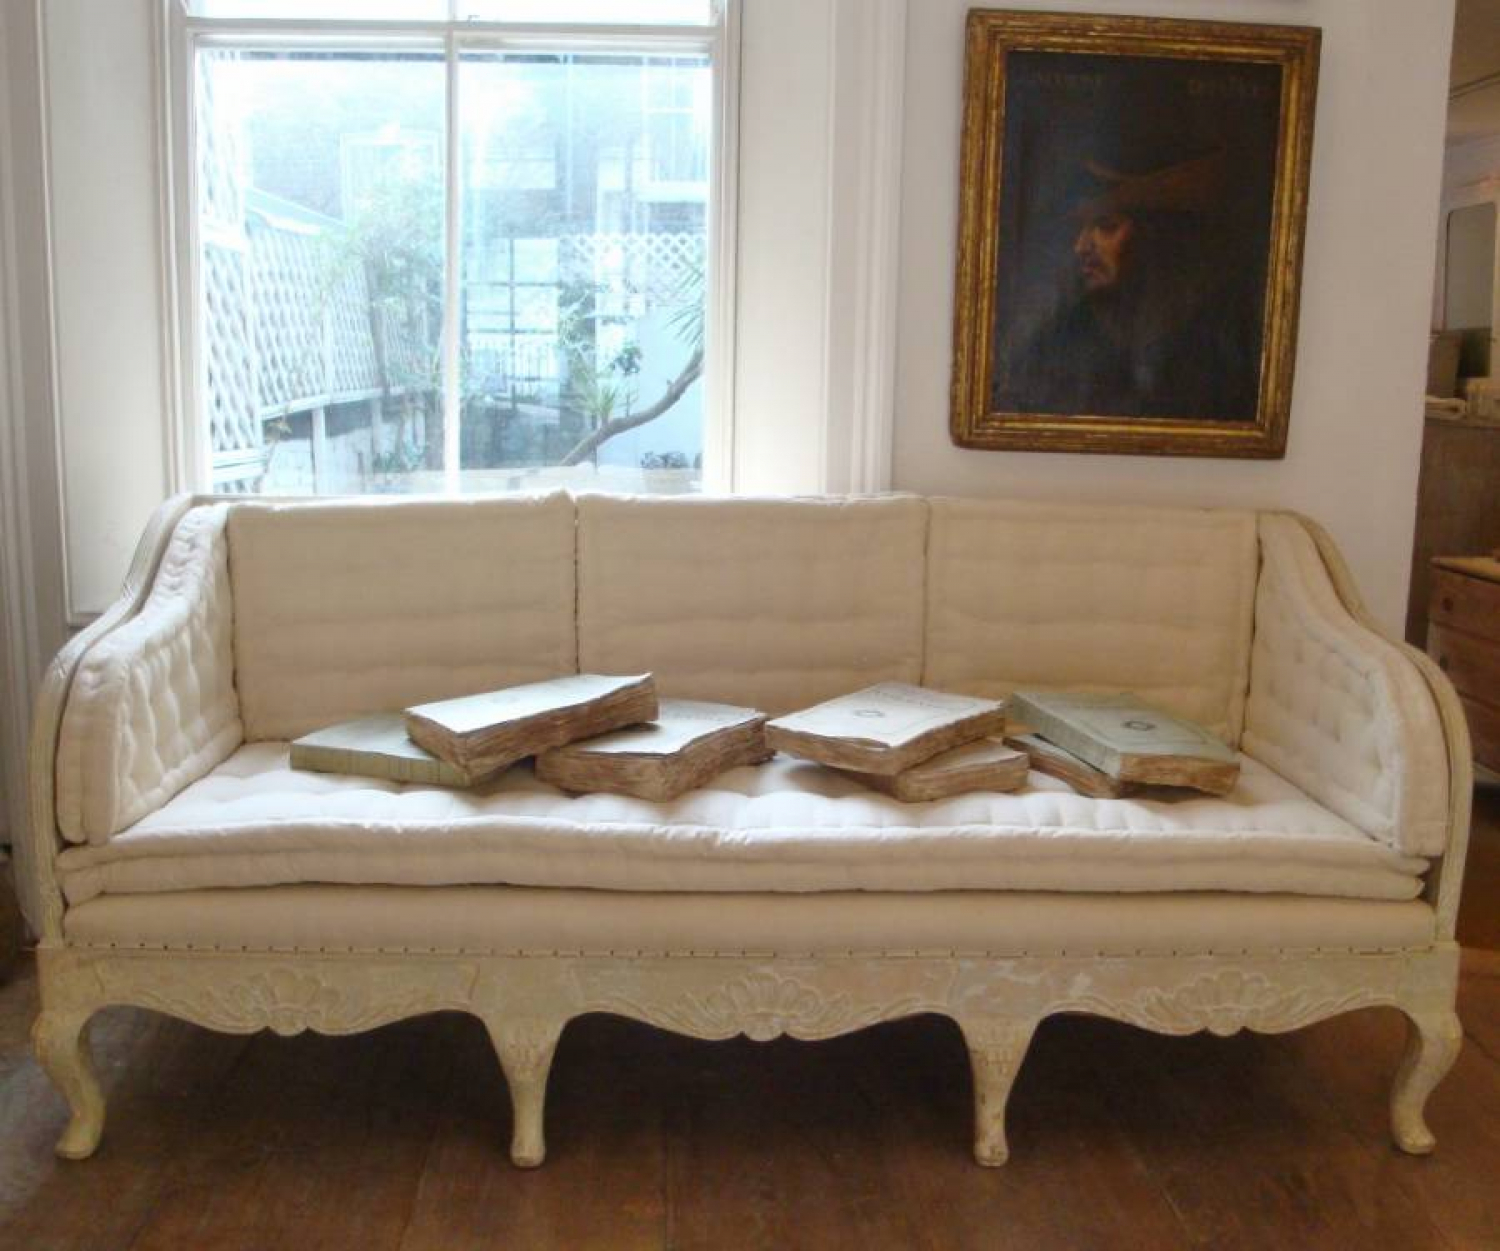 19th century Swedish Sofa